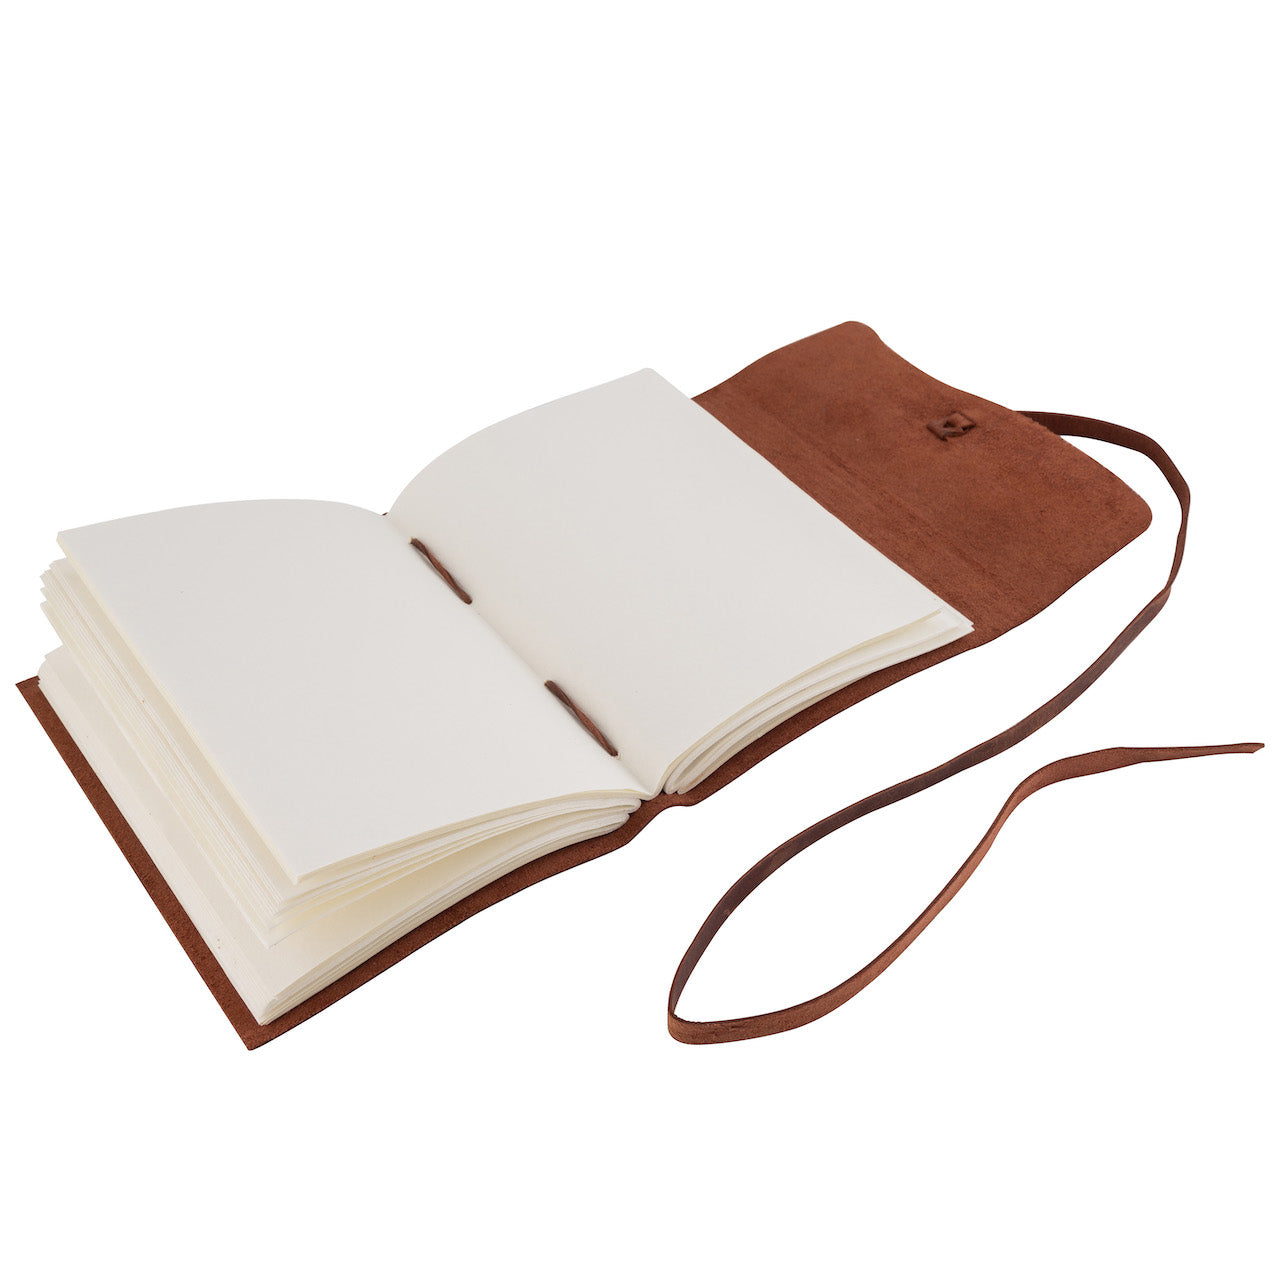 Tuk Tuk Press® Handmade Leather Oil Journal Planner, 200 Thick Unlined Recycled Cotton Pages